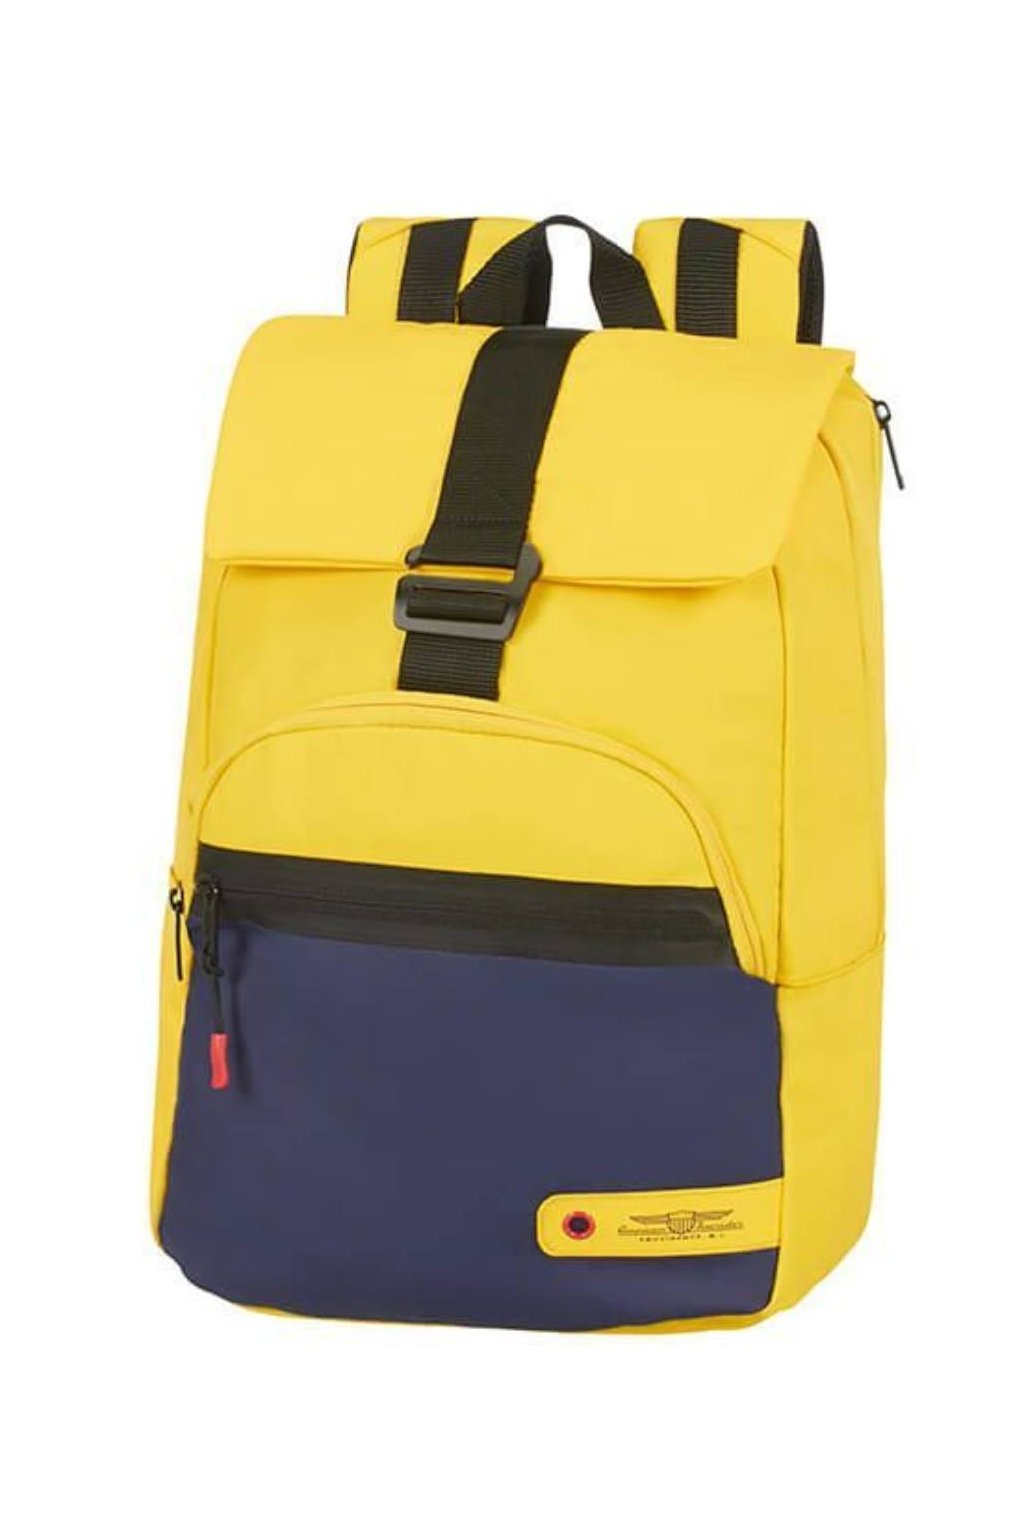 kufrland americantourister cityaim laptopbackpack14.1 blue yellow1